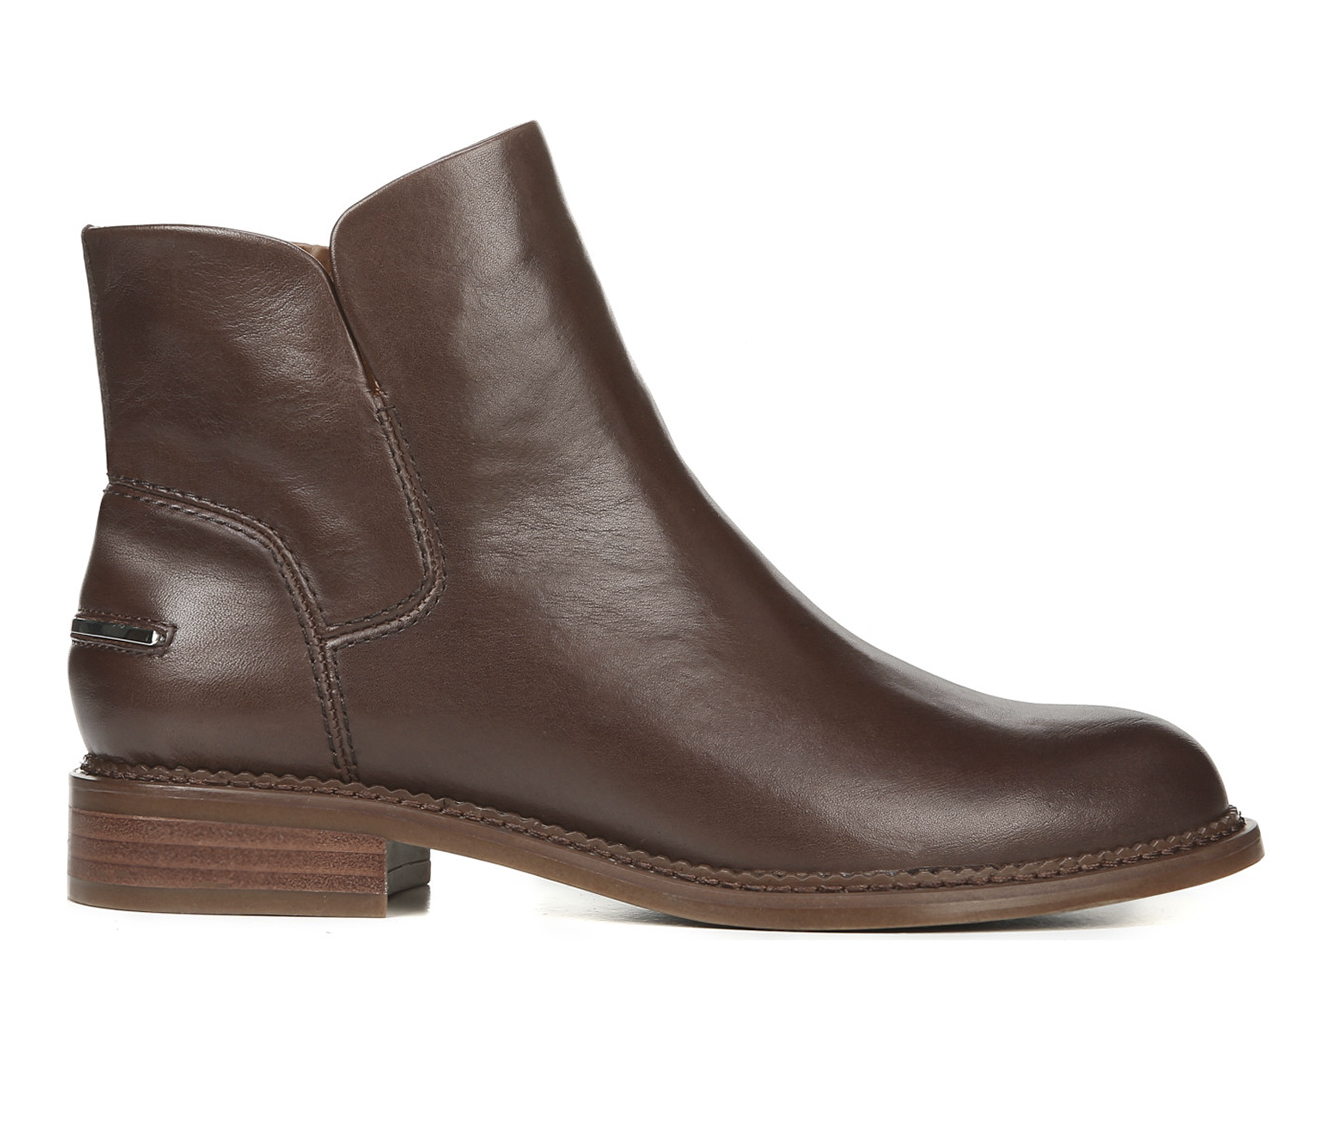 Franco Sarto Happily Women's Boot (Brown Leather)